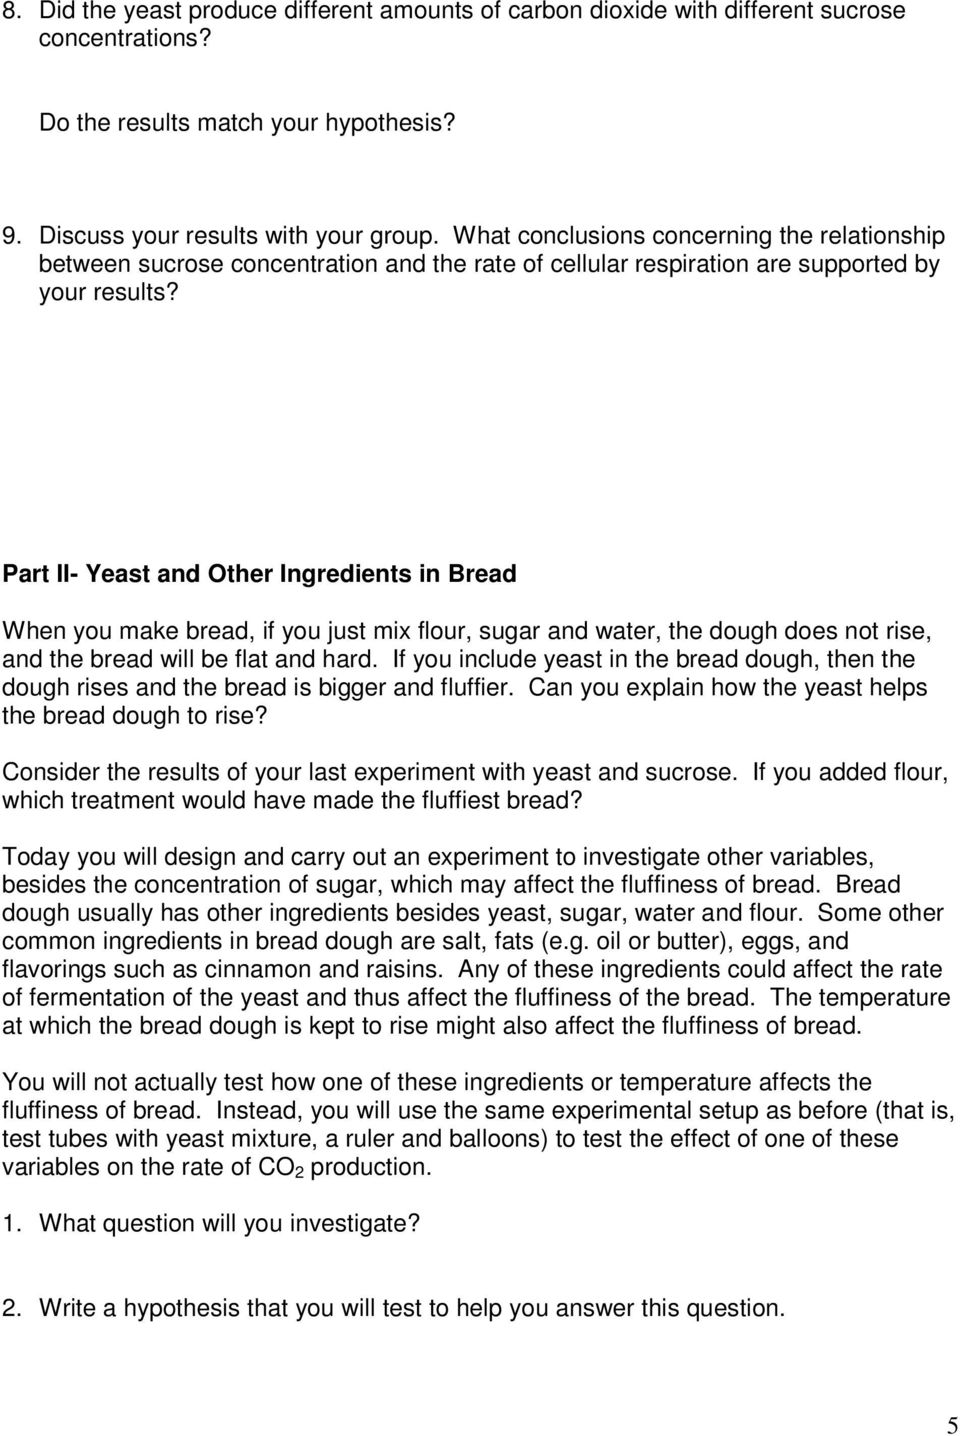 Part II- Yeast and Other Ingredients in Bread When you make bread, if you just mix flour, sugar and water, the dough does not rise, and the bread will be flat and hard.